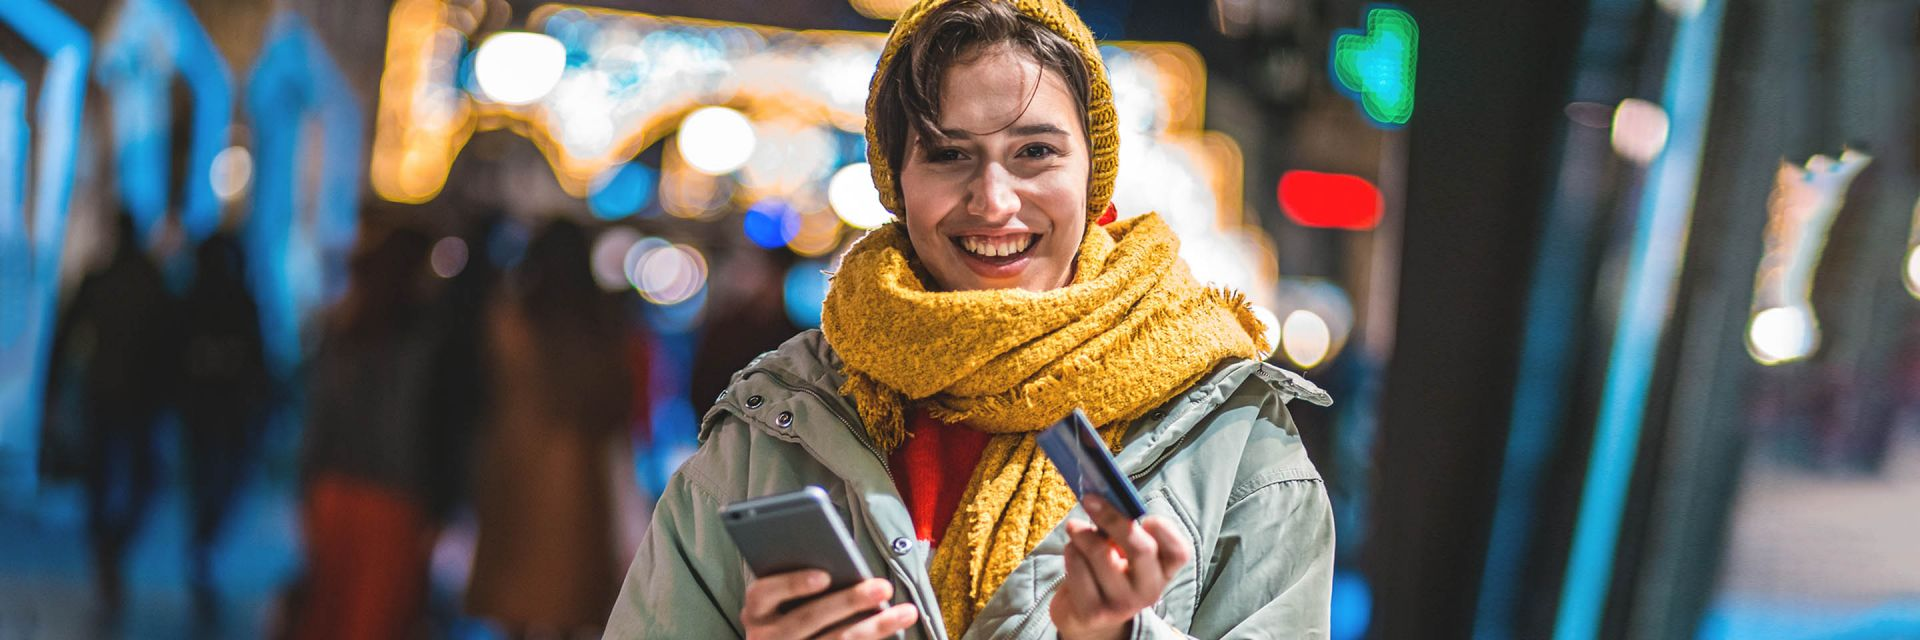 A smiling woman wearing a hat and scarf holds up her smartphone and her bank card